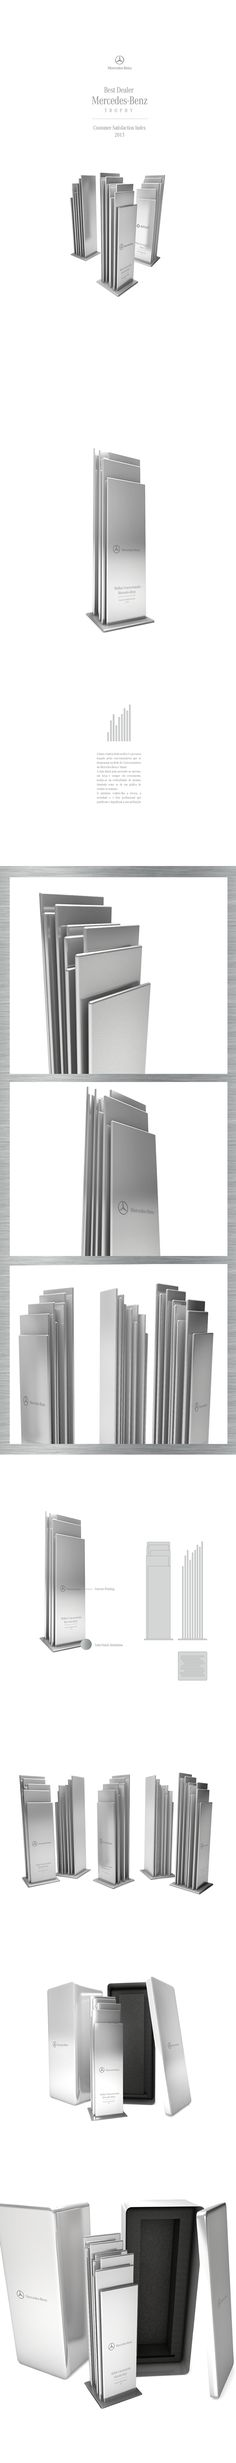 Mercedes-Benz · Best Dealer Trophy on Behance